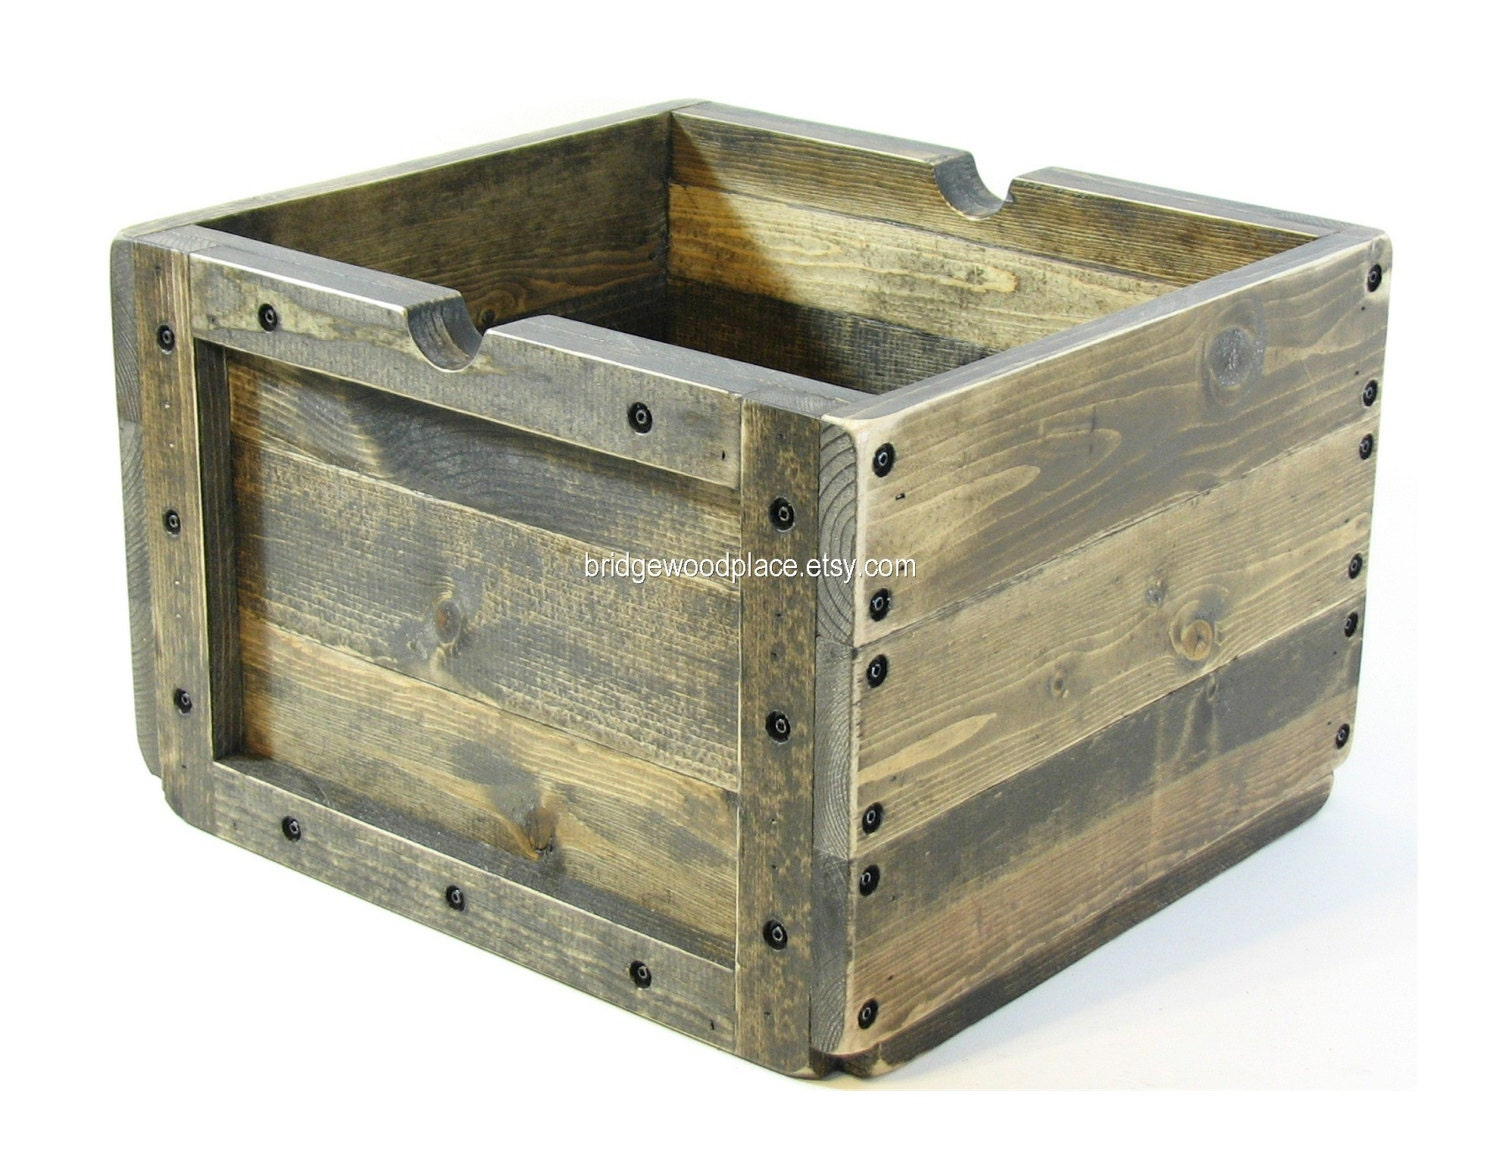 Wood crate wooden box furniture storage photo by bridgewoodplace Wooden crates furniture